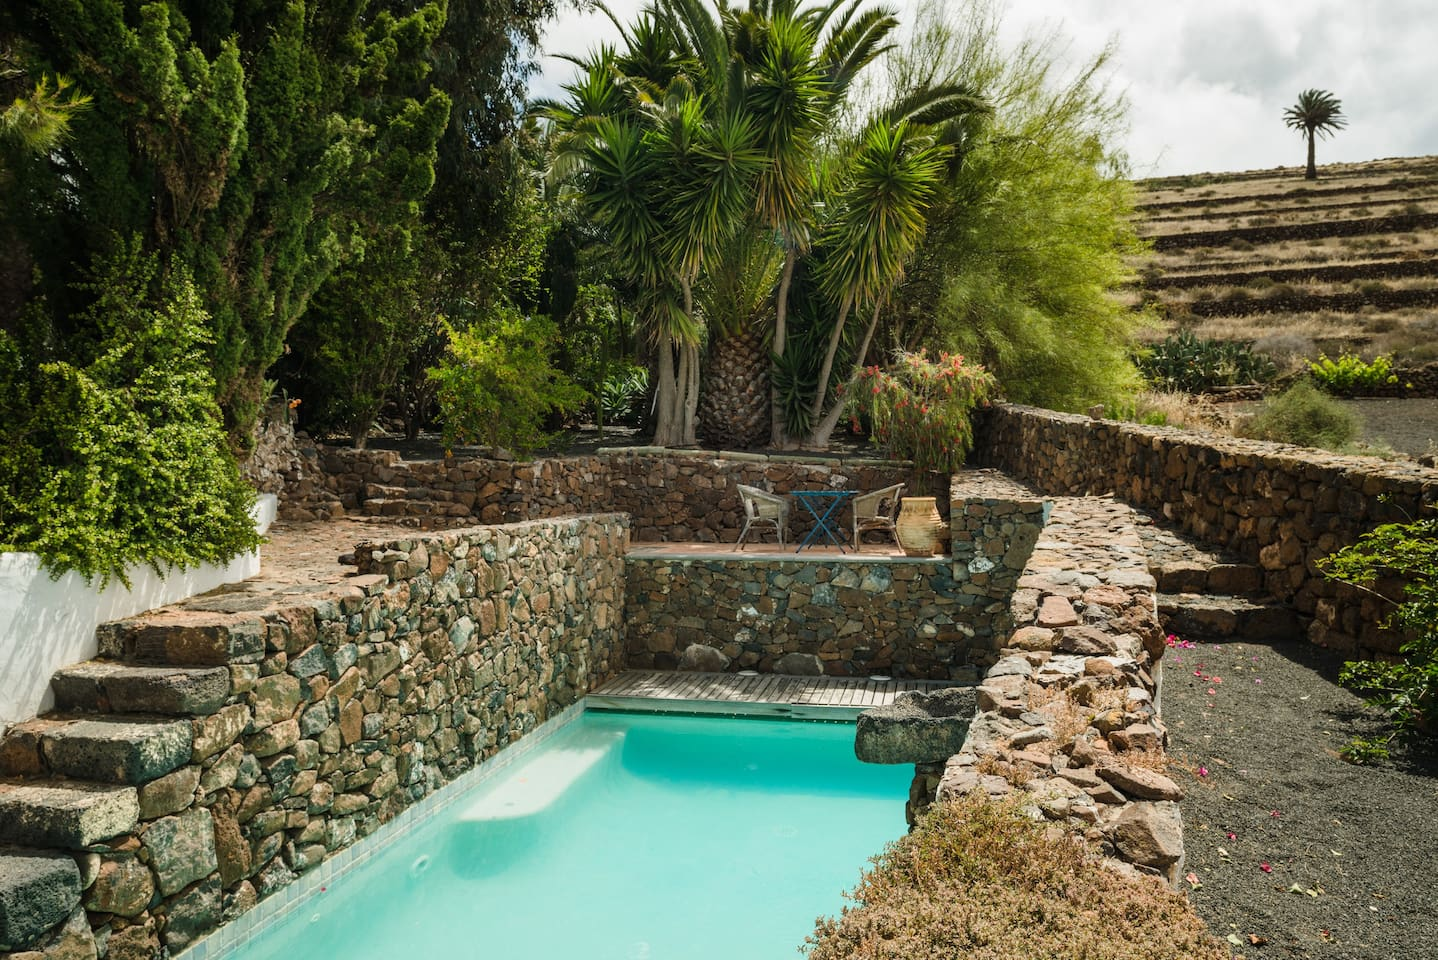 The villa features a private heated pool framed by a lush garden and typical rough stone walls